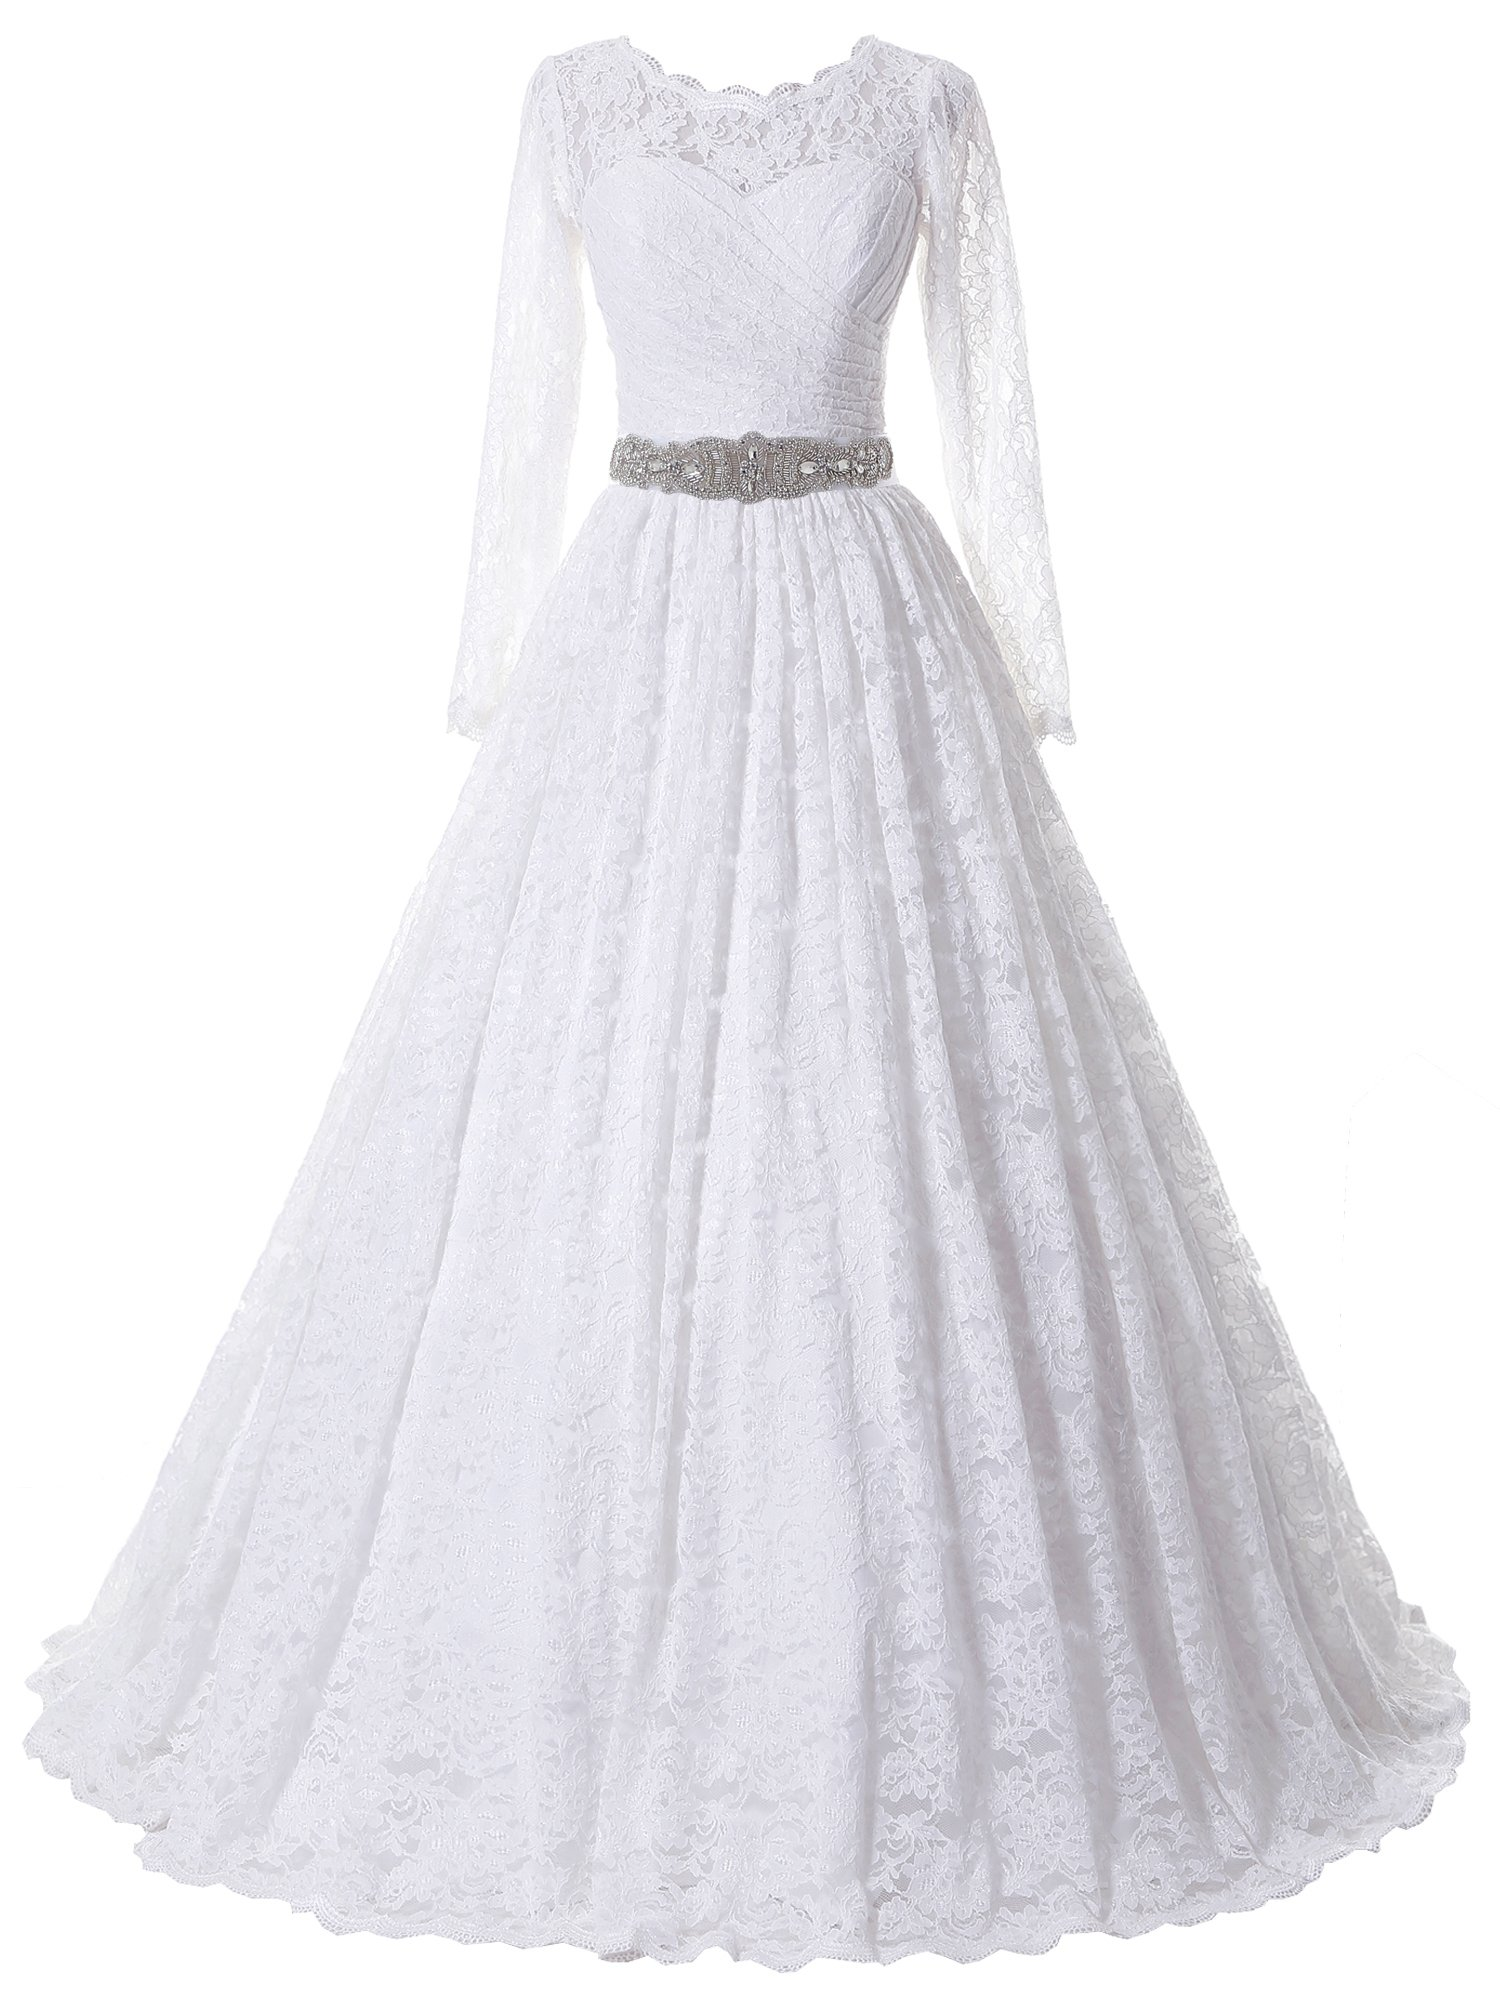 SOLOVEDRESS Women's Ball Gown Lace Princess Long Sleeves Wedding Dress Sash Beaded Bridal Gown (US 20 Plus,White)